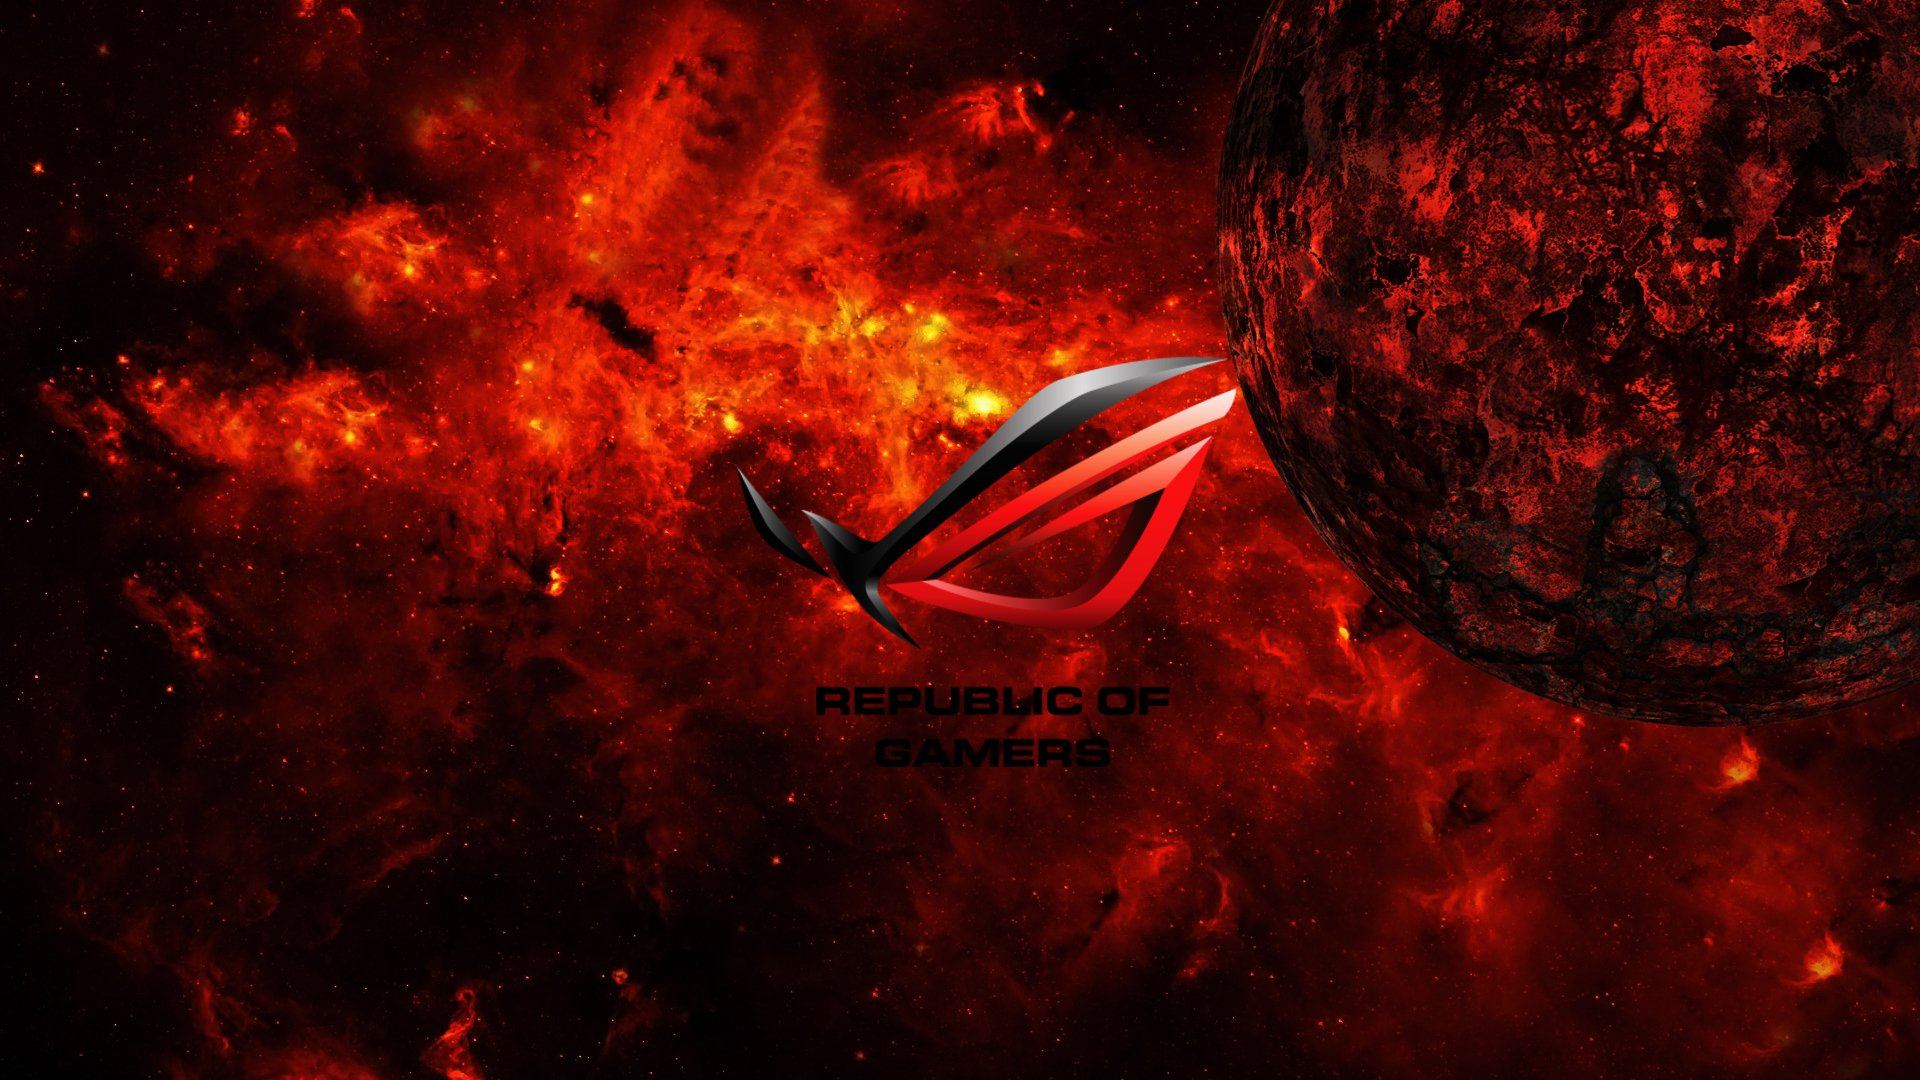 Asus Wallpapers Hd furthermore 4k Asus Rog Logo 186 together with 4k Asus Rog Logo 274 together with Watch in addition Watch. on republic of gamers asus rog logo laptop wallpaper